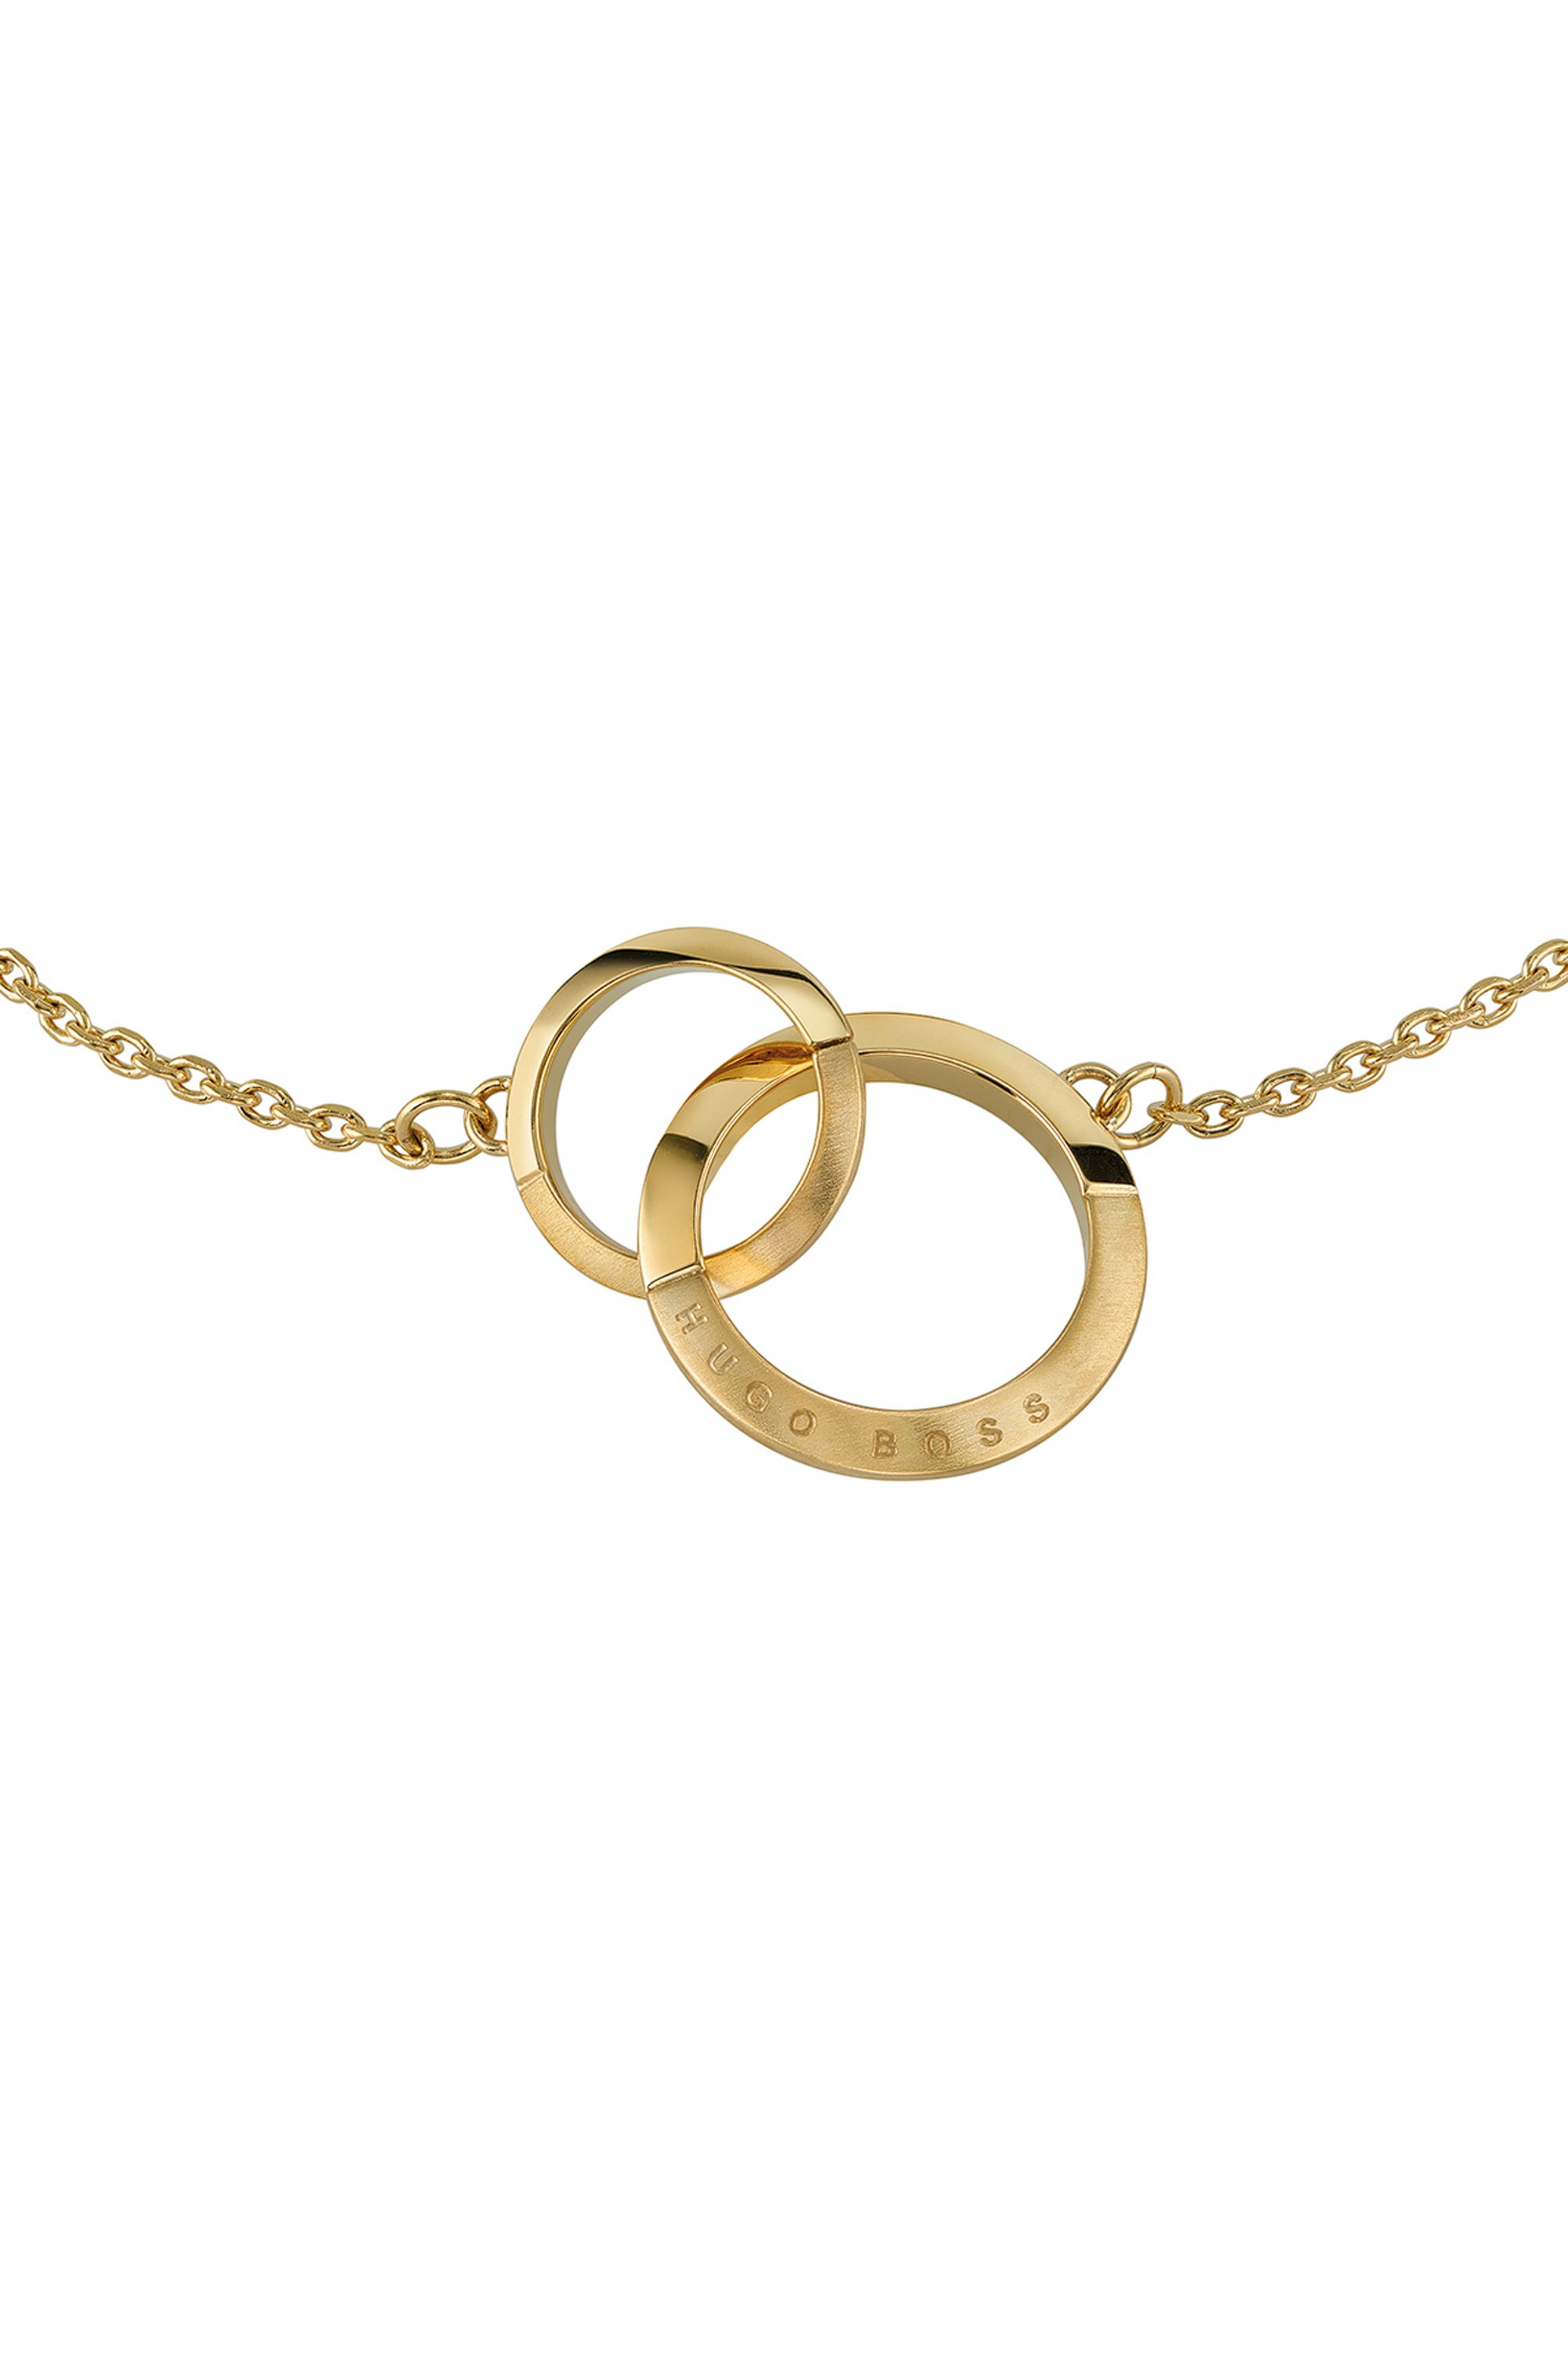 Linked-ring bracelet with gold finish and crystals